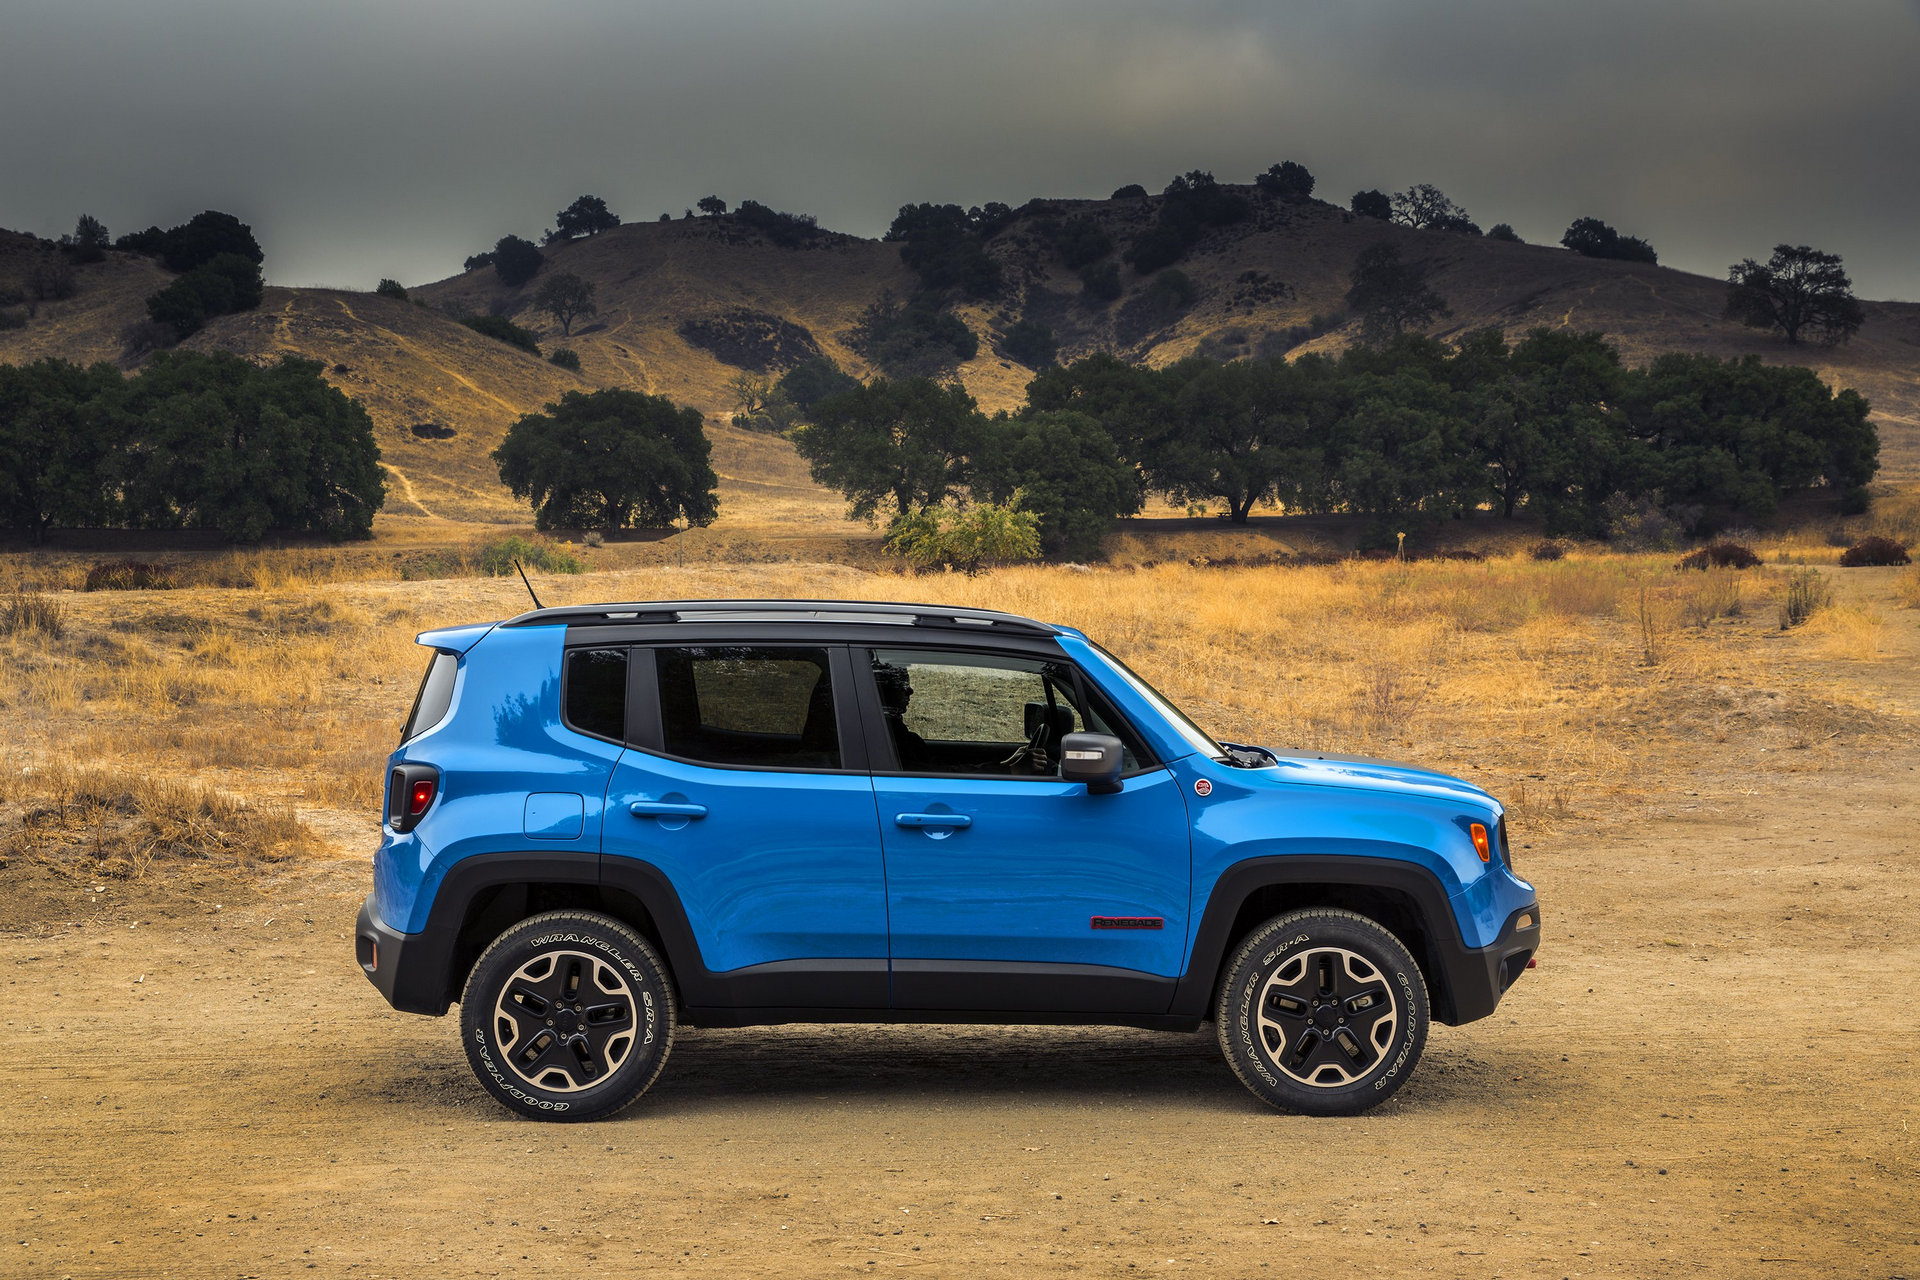 Jeep Renegade © Chrysler Group LLC